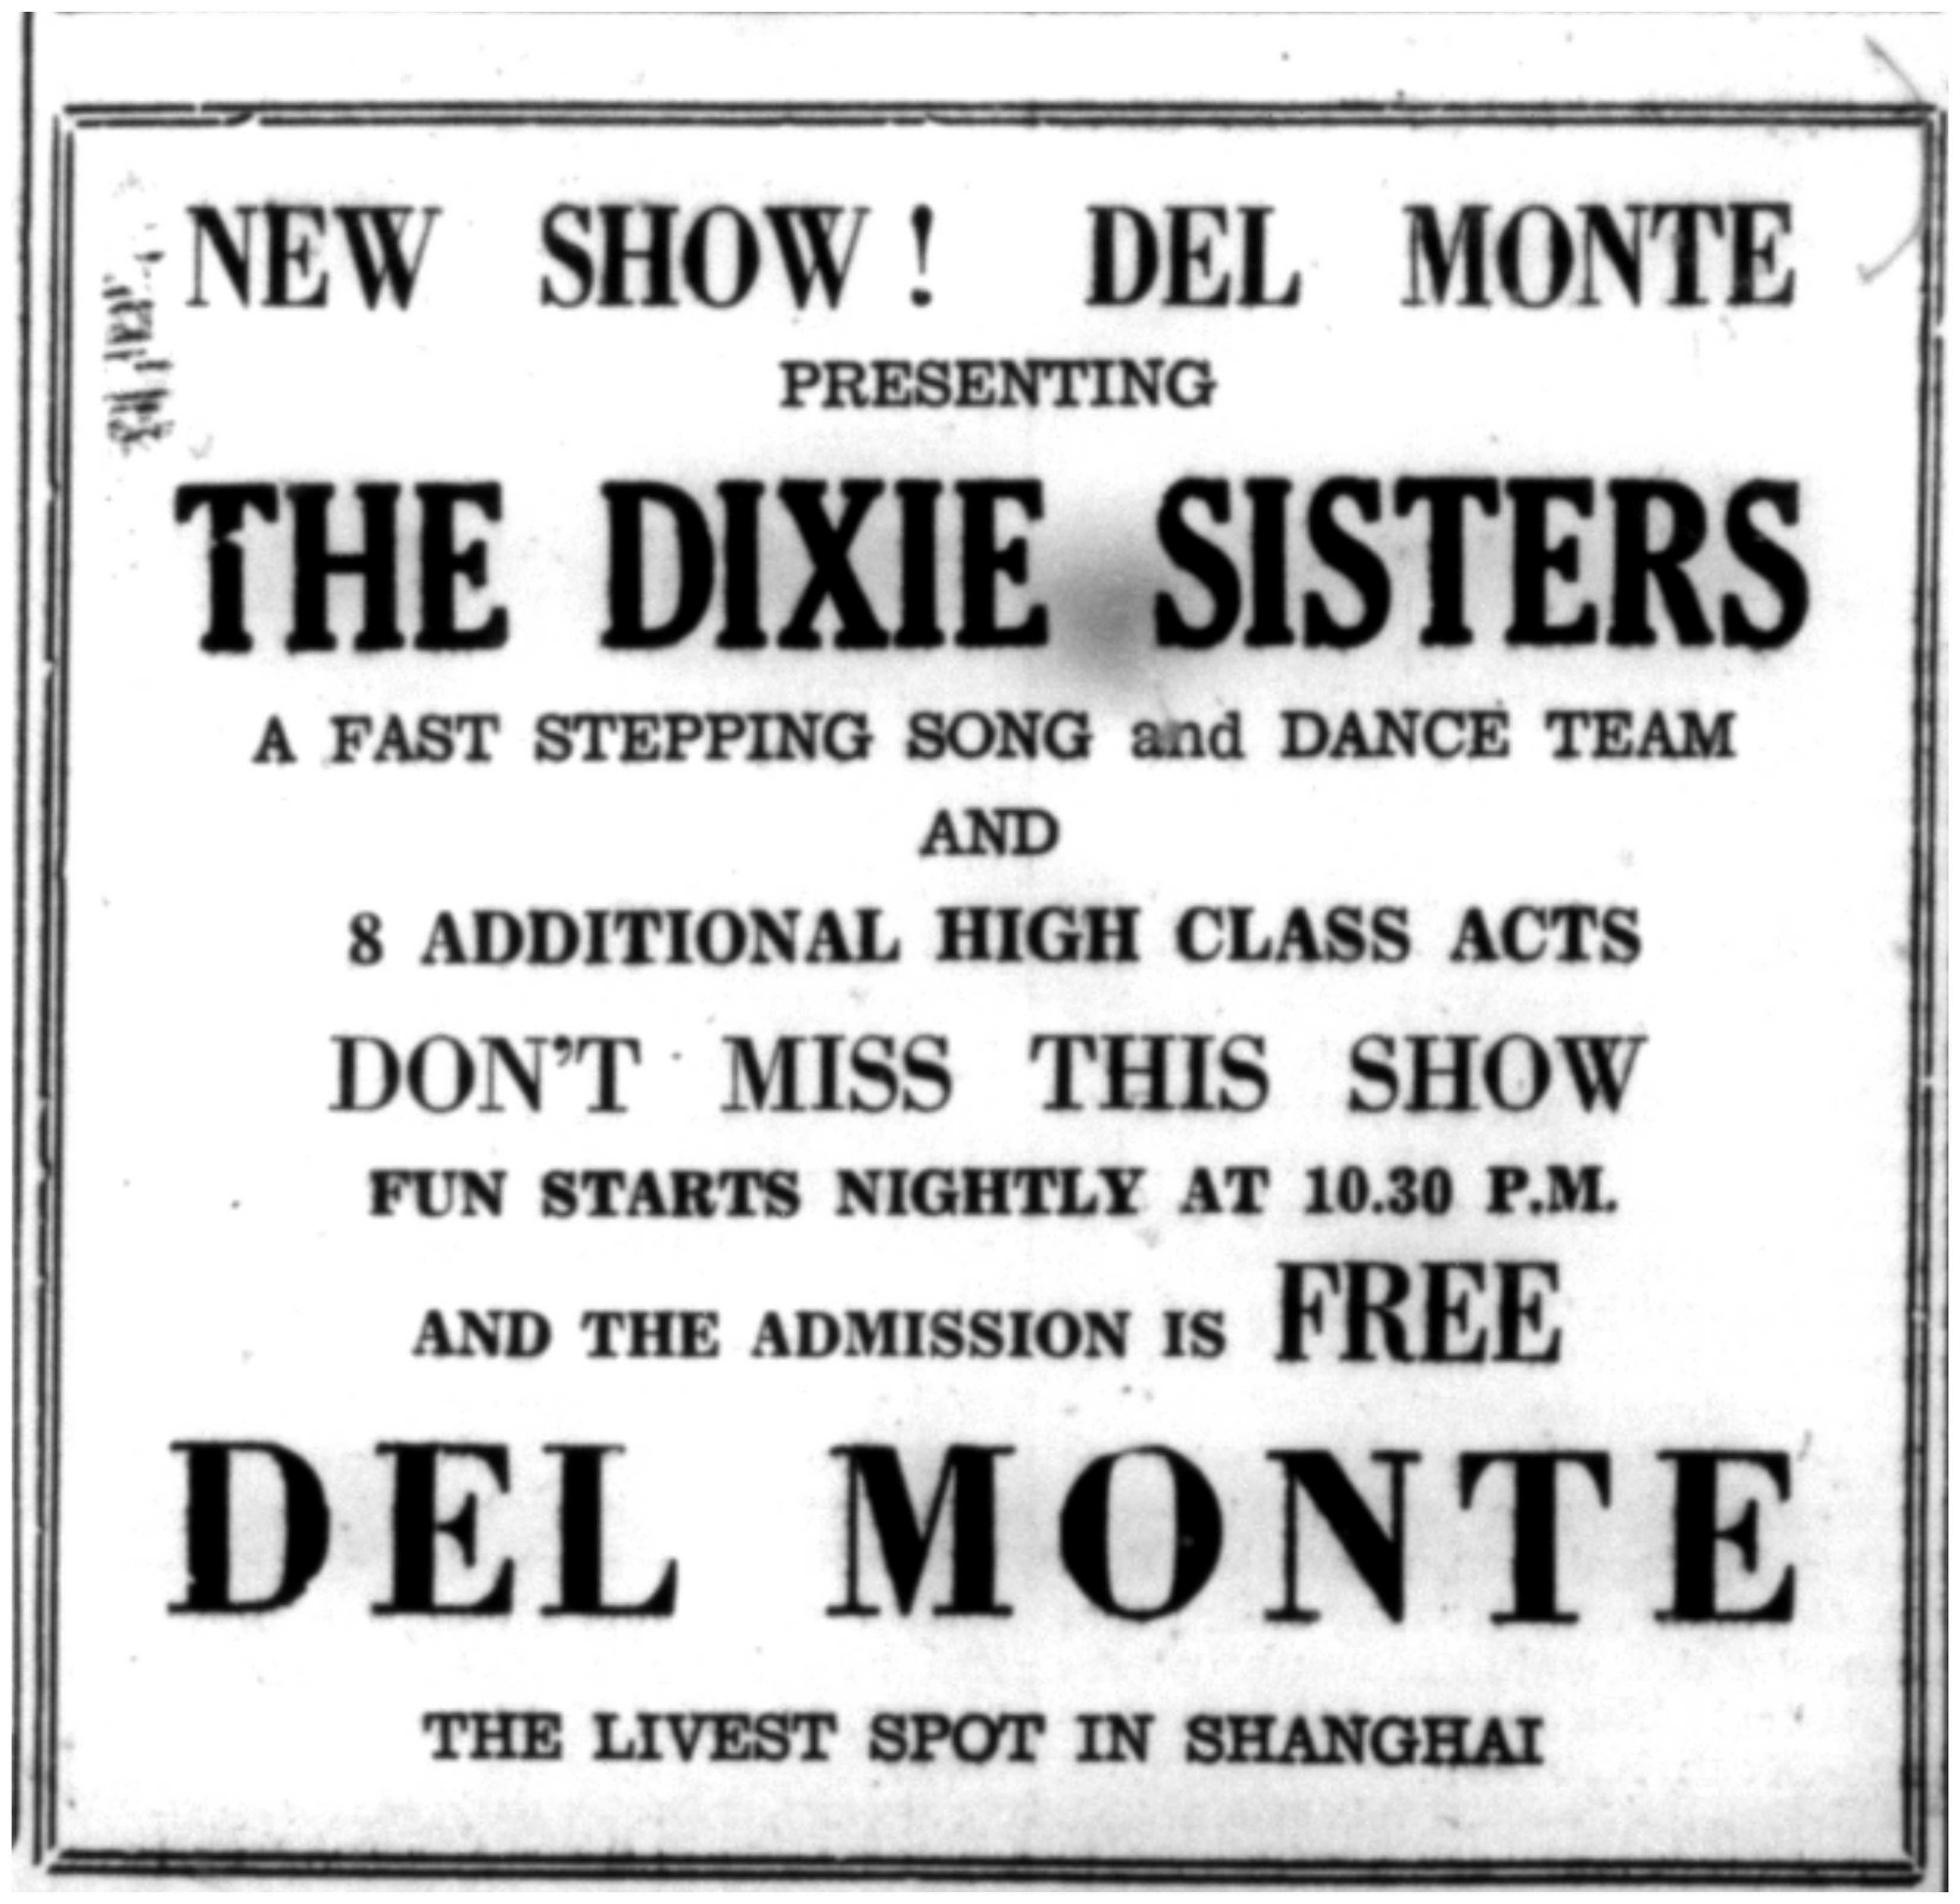 The-Dixie-Sisters-at-the-Del-Monte.jpg